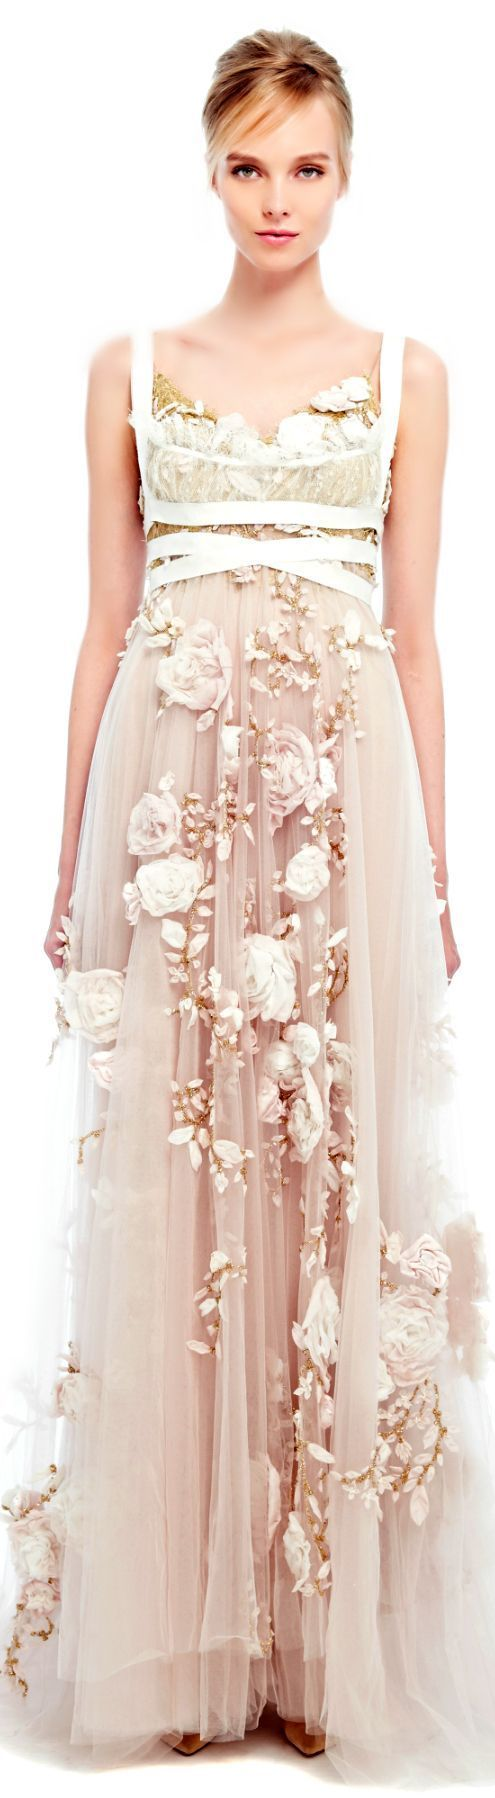 Marchesa Spring Summer 2014 Silk Ribbon Rose Gown via Everything's coming up roses